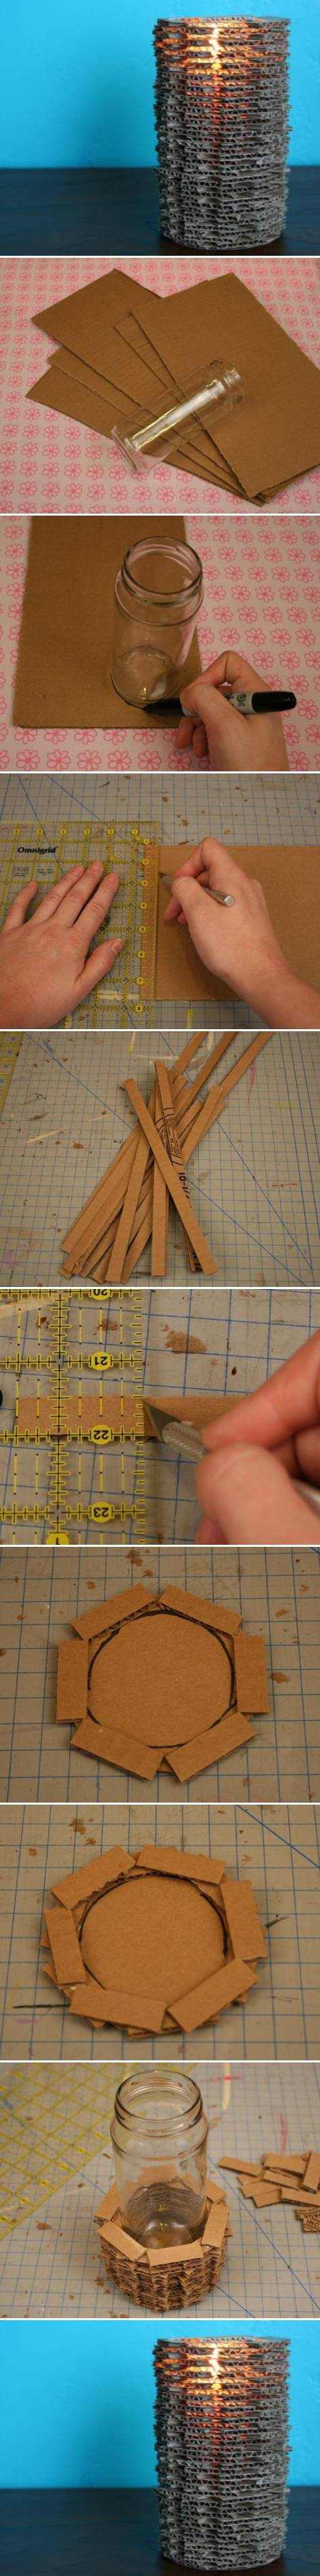 How To Make cool Cardboard Candle Holder step by step DIY tutorial instructions